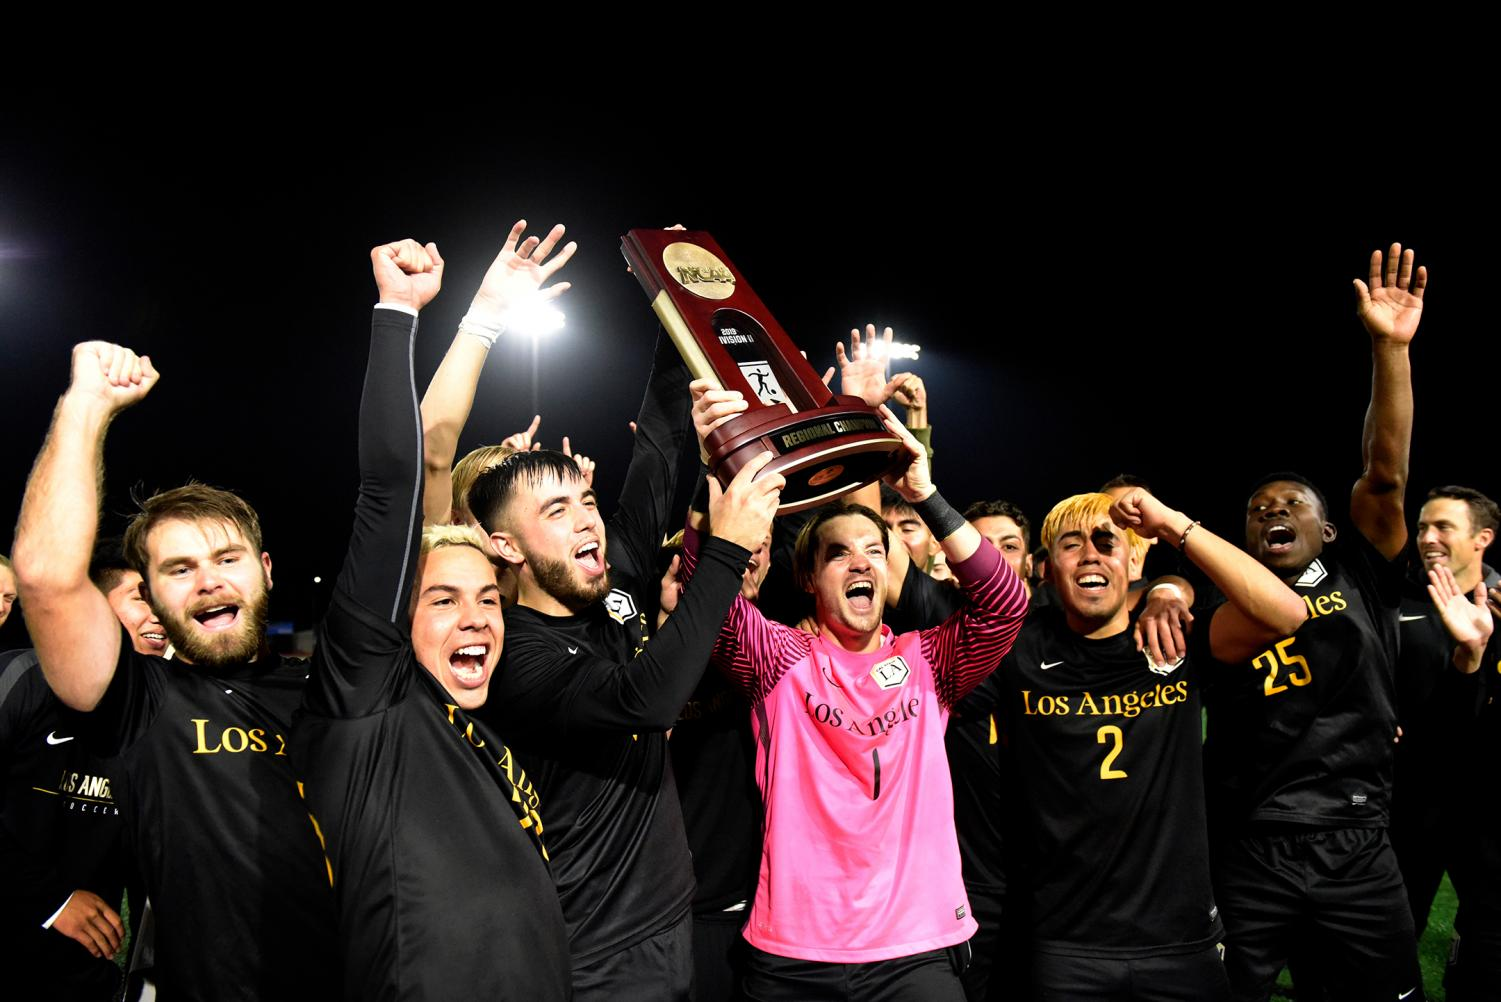 Cal State LA men's soccer team celebrate winning the NCAA quarterfinals with their own trophy. Cal State LA will transition to the NCAA Championship semifinal in Pittsburgh, Pennsylvania.